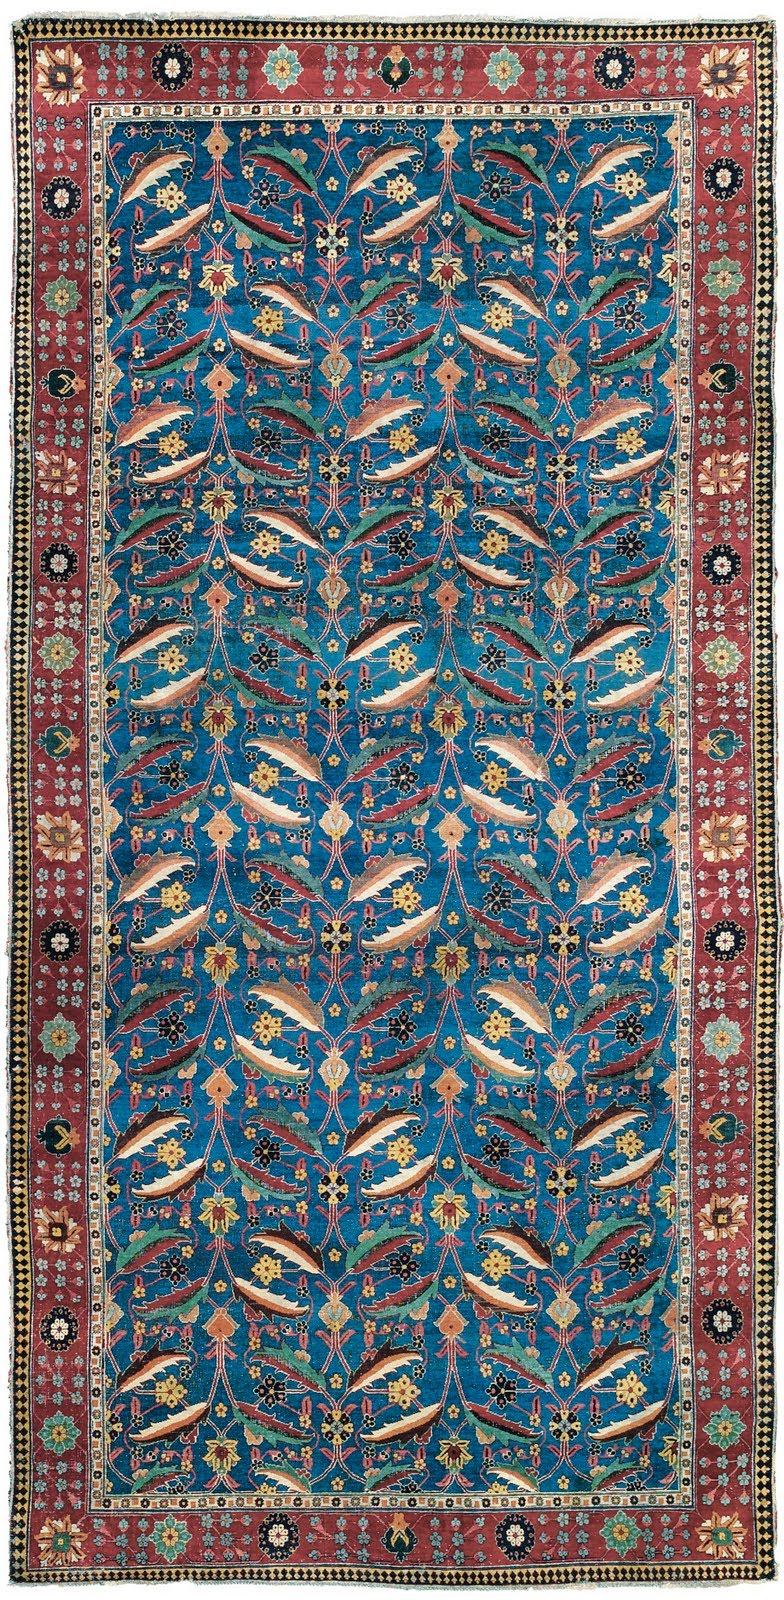 Polonaise antique oriental rugs - Safavid Floral And Polonaise Carpets When Persian Rugs Came To Europe